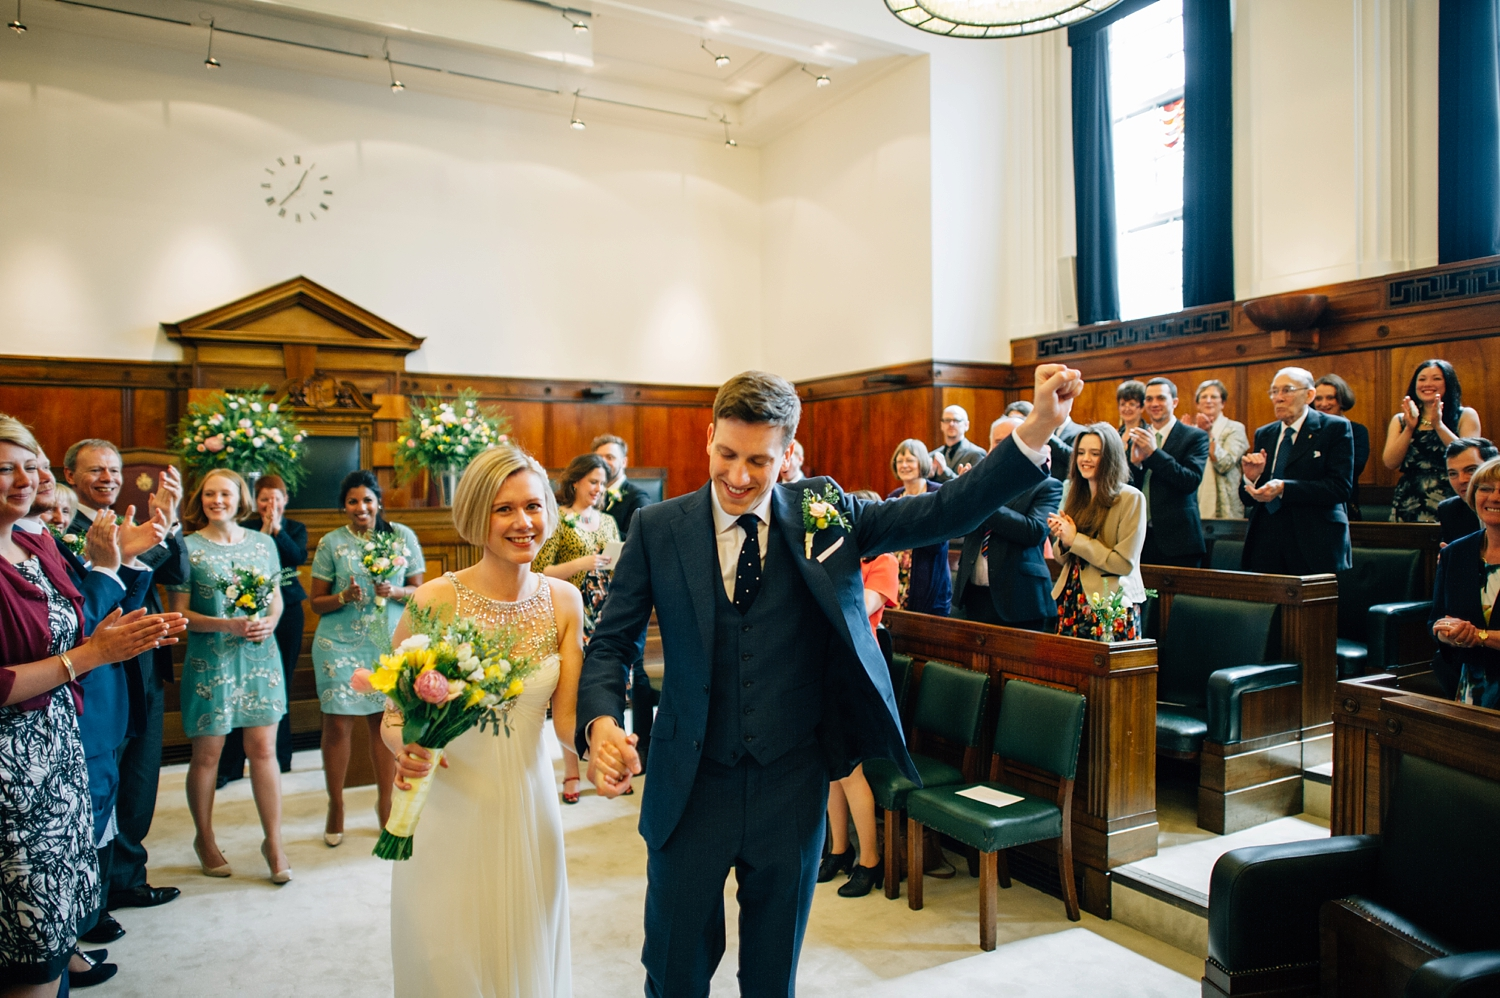 0059-lisa-devine-alternative-wedding-photography-london-hackney-dalston-london-photography-townhall-hotel.JPG